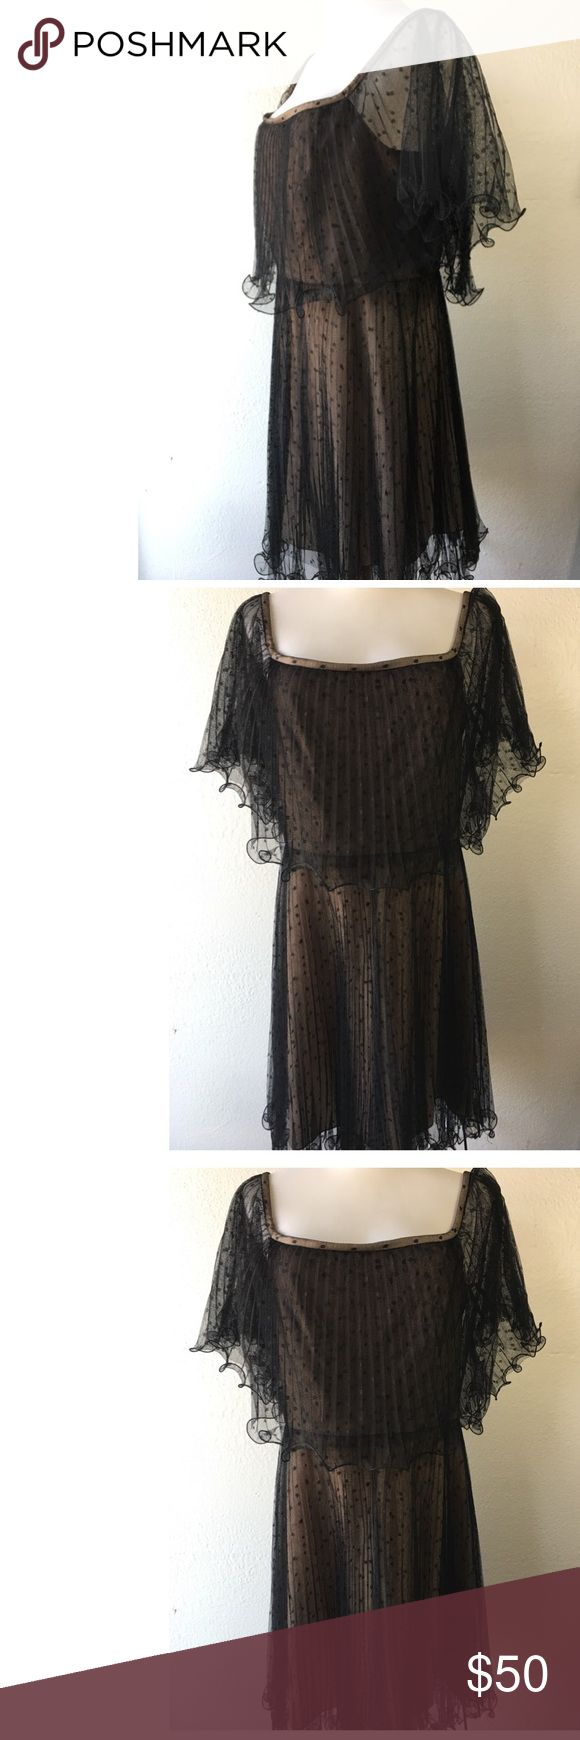 BCBG Black and Nude Evening Dress Sz 10 So sexy! A great dress for date night, holidays or any upcoming special occasion. Mesh, see through black material embellished with polka dots over nude sheath dress. No holes or rips. Back zip up enclosure. From smoke and pet free environment. BCBG Dresses